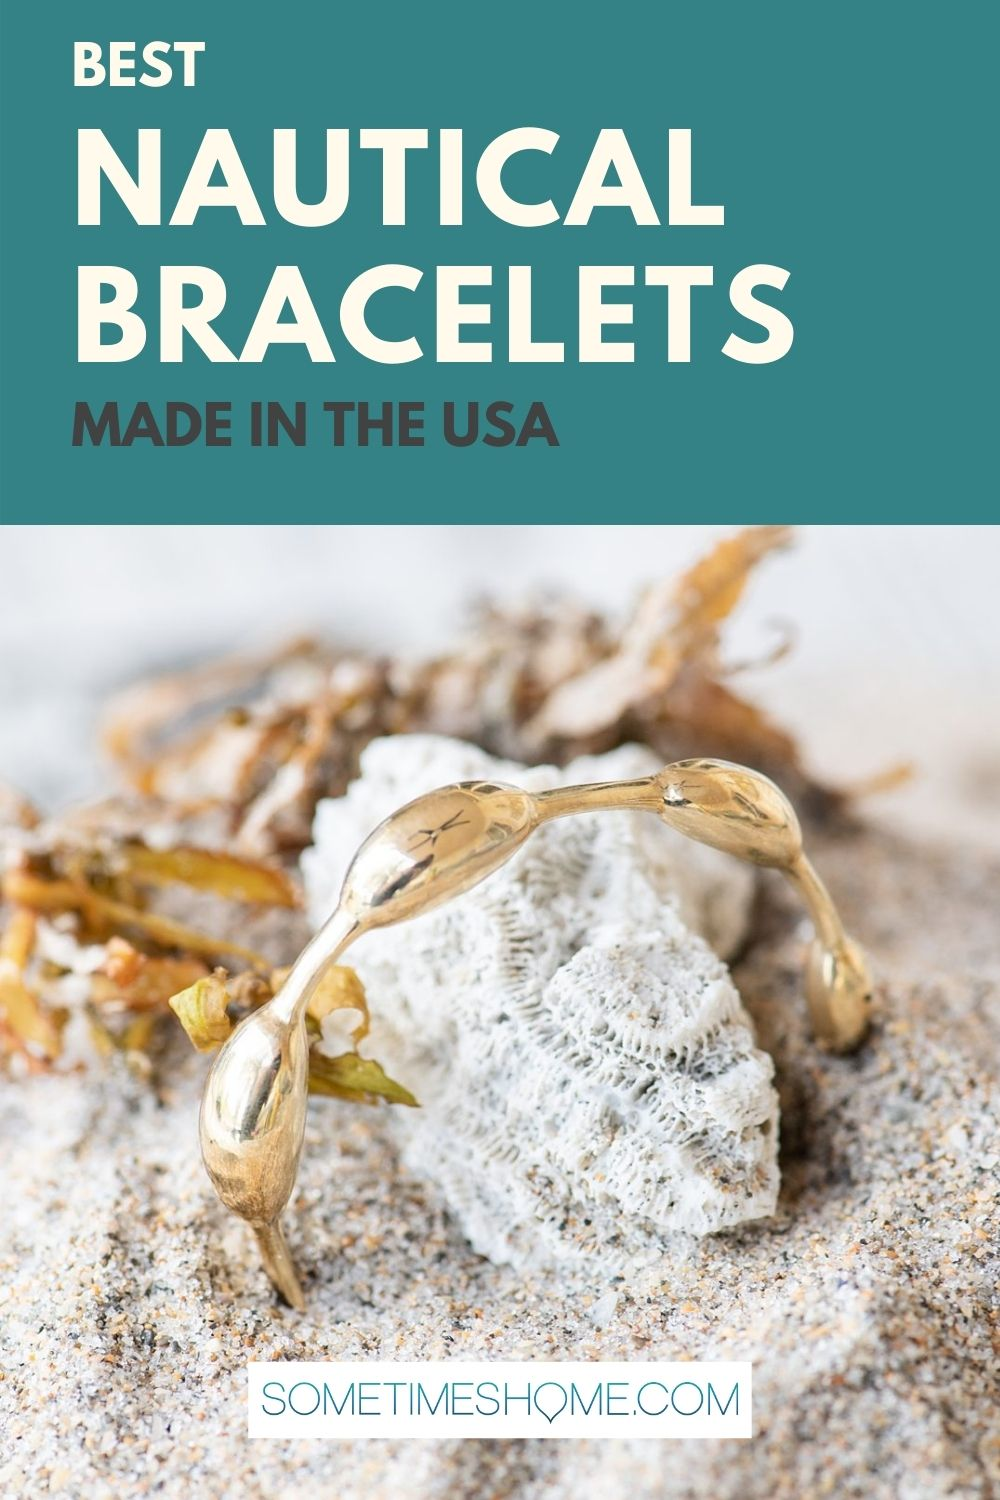 Pinterest image for the Best Nautical Bracelets made in the USA with a photo of a seaweed inspired bracelet.